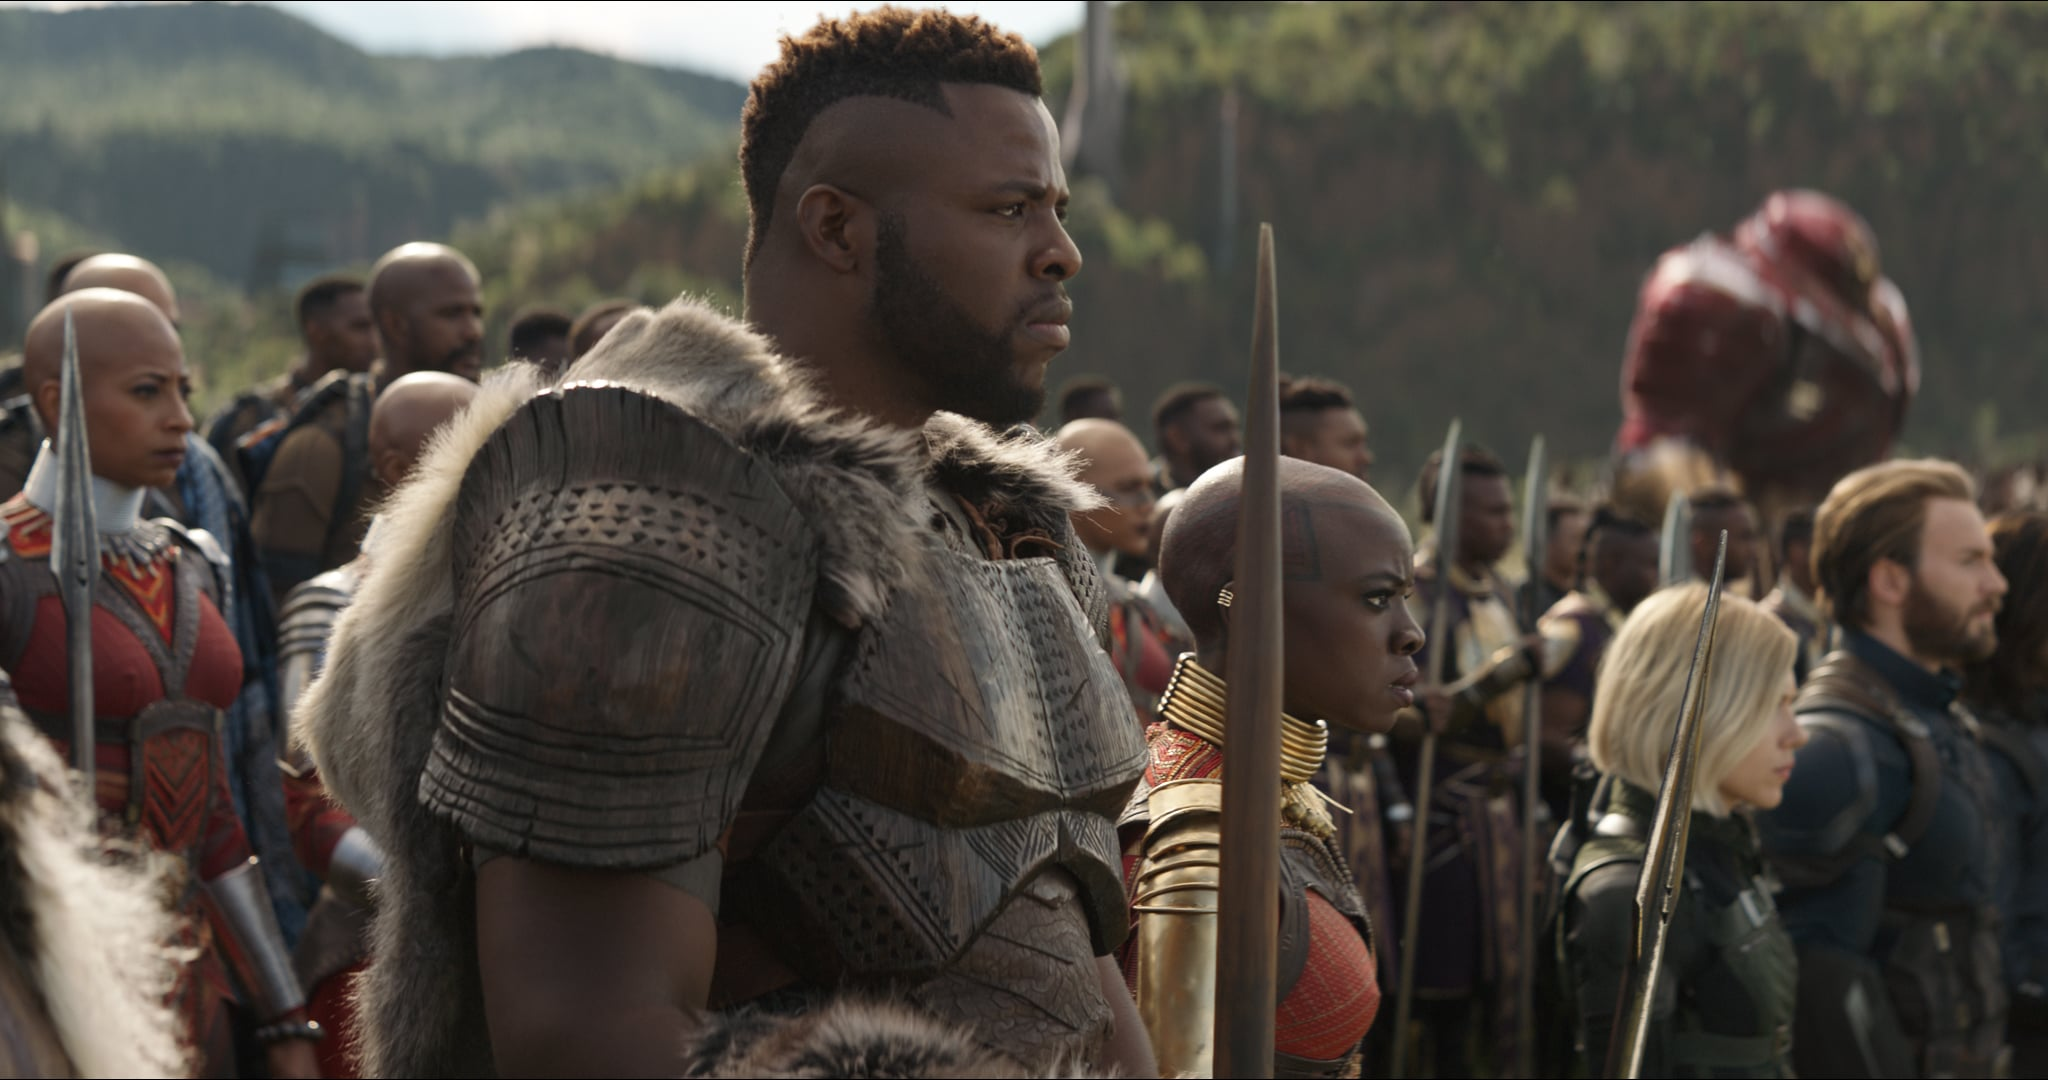 Marvel Studios' AVENGERS: INFINITY WAR..L to R: M'Baku (Winston Duke), Okoye (Danai Gurira), Black Widow/Natasha Romanoff (Scarlett Johansson) and Captain America/Steve Rogers (Chris Evans)..Photo: Film Frame..©Marvel Studios 2018